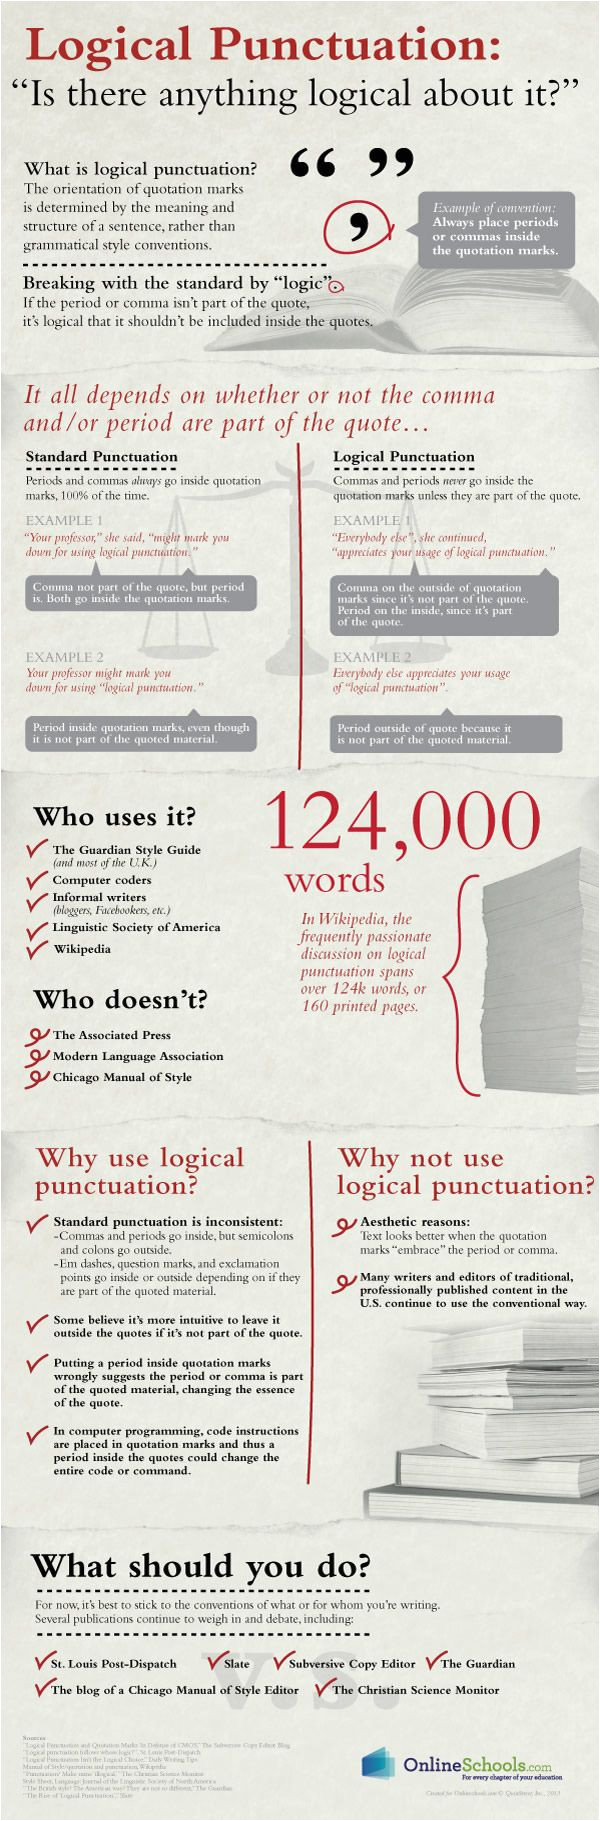 logical punctuation the meaning and structure of a sentence to determine the placement of a